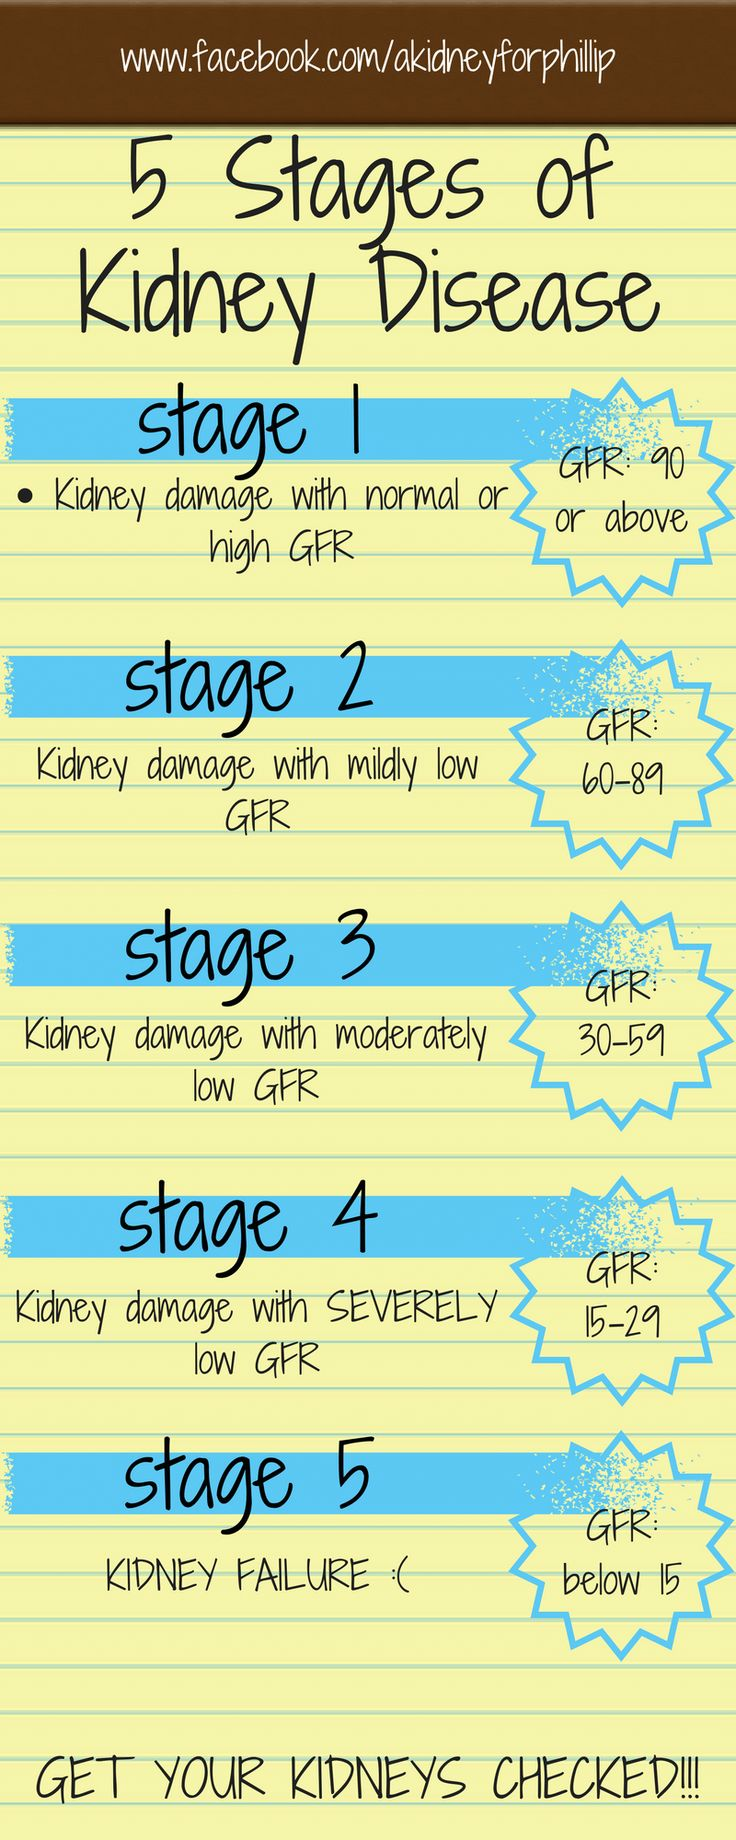 stage 1 stage 2 stage 3 stage 4 stage 5 www.facebook.com/akidneyforphillip 5 Stages of Kidney Disease GFR: 90 or above Kidney damage with normal or high GFR GFR: 60-89 Kidney damage with mildly low...